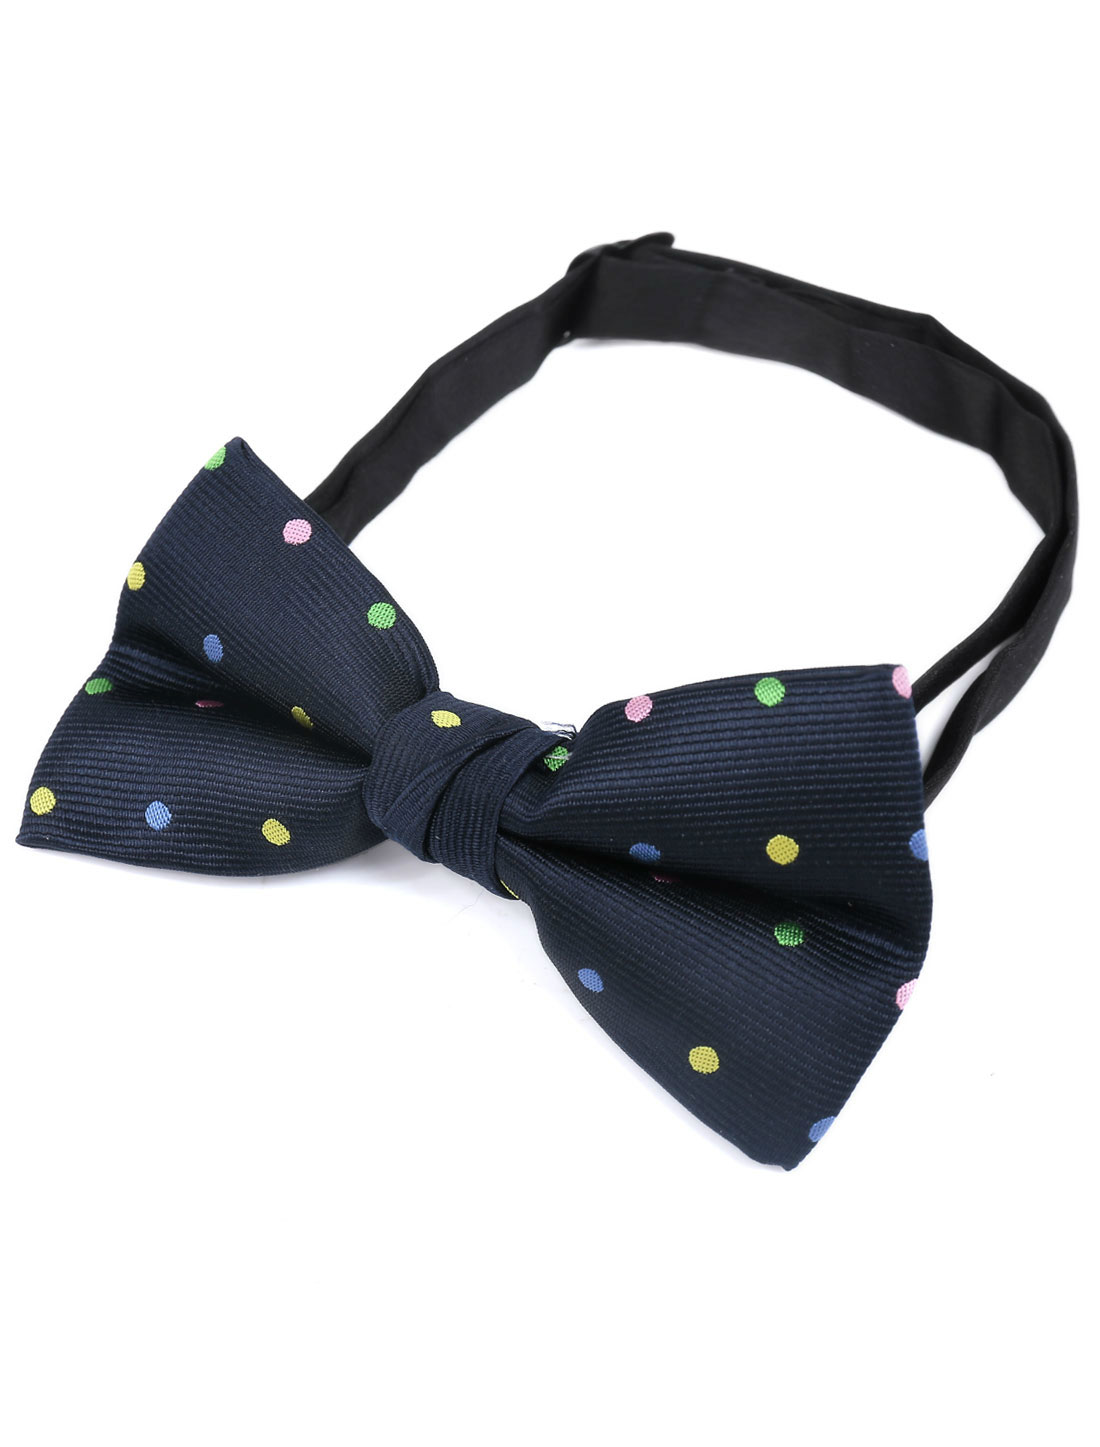 Adjustable Neck Strap Dots Two Layers Bowtie for Men Navy Blue